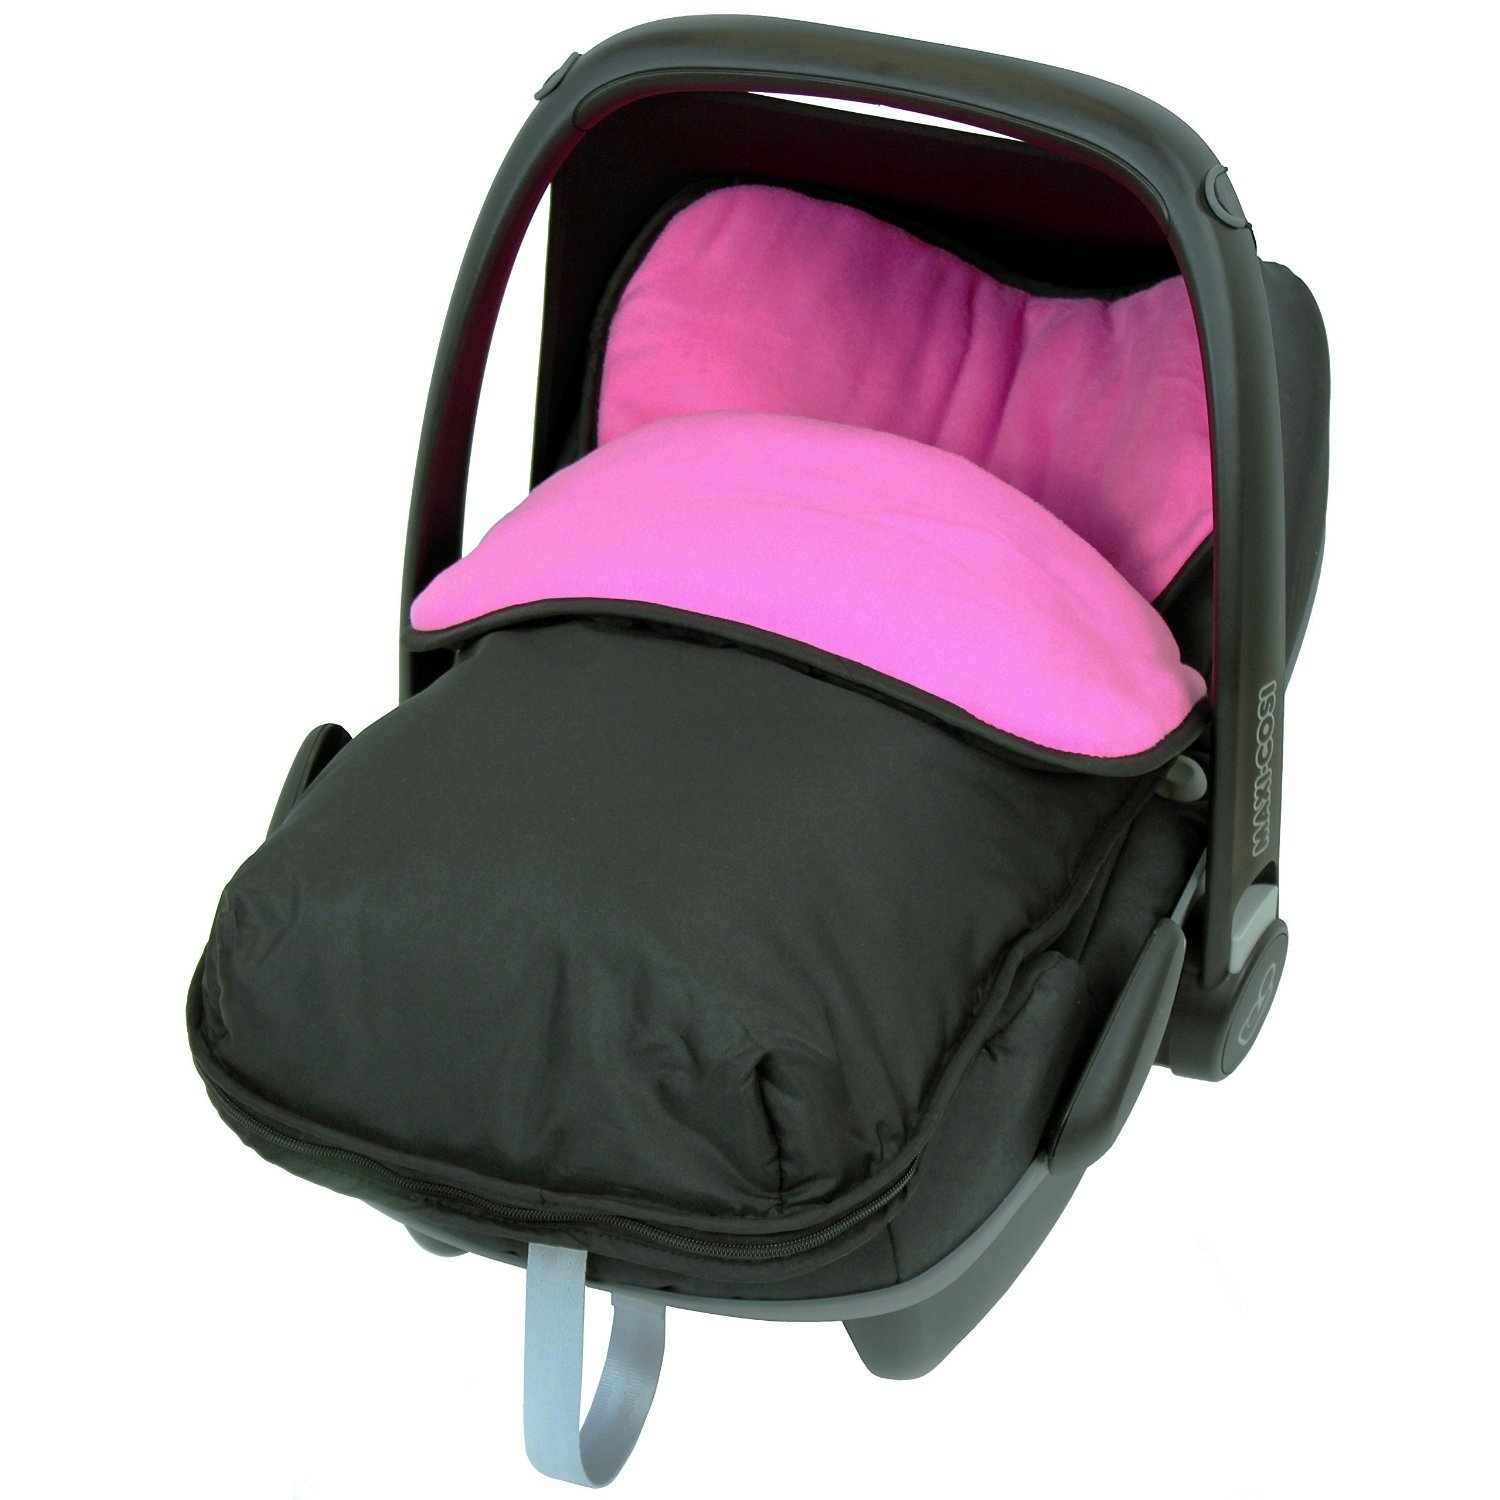 Universal Car Seat Footmuff To Fit Mamas and Papas - Pink (Black/Pink) iSafe iSBgtCrsFmBlue